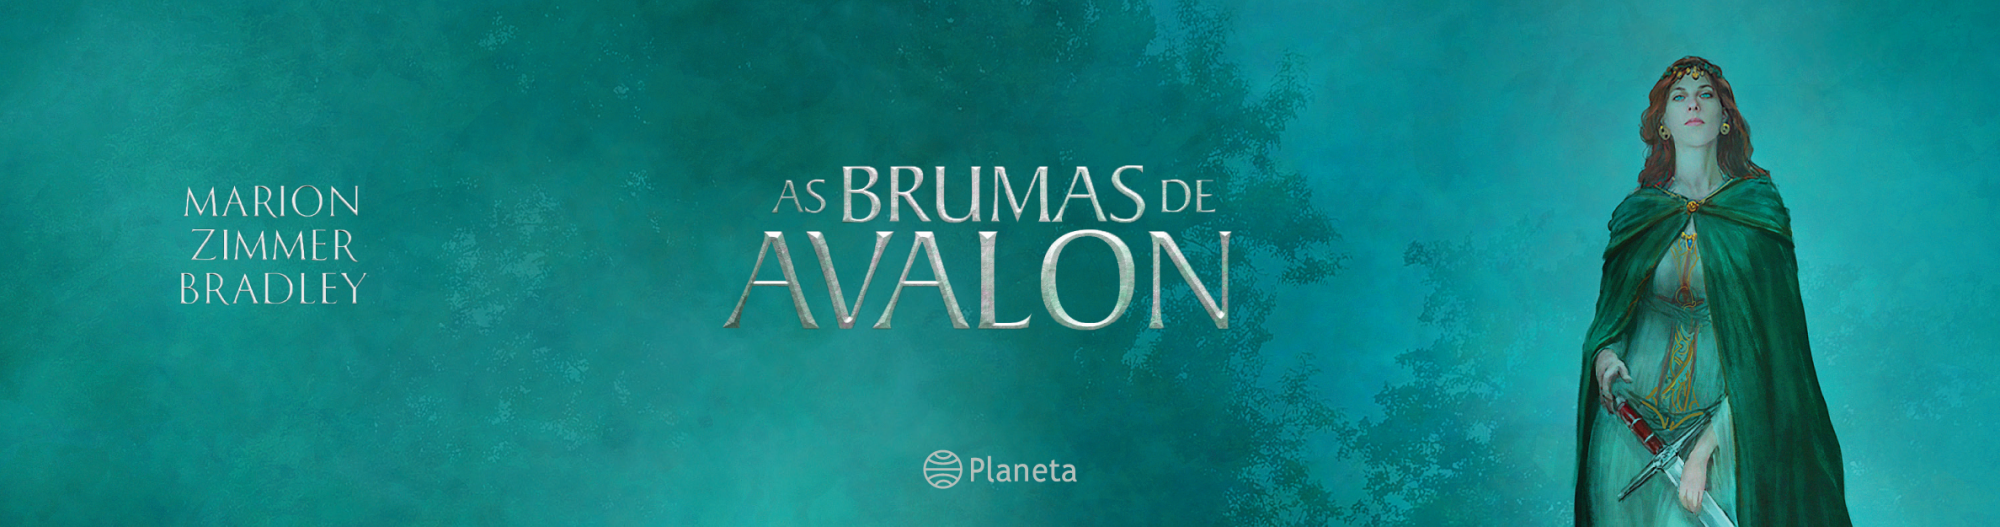 164_1_as_brumas_de_avalon-06_banner_site_1140x300png.png